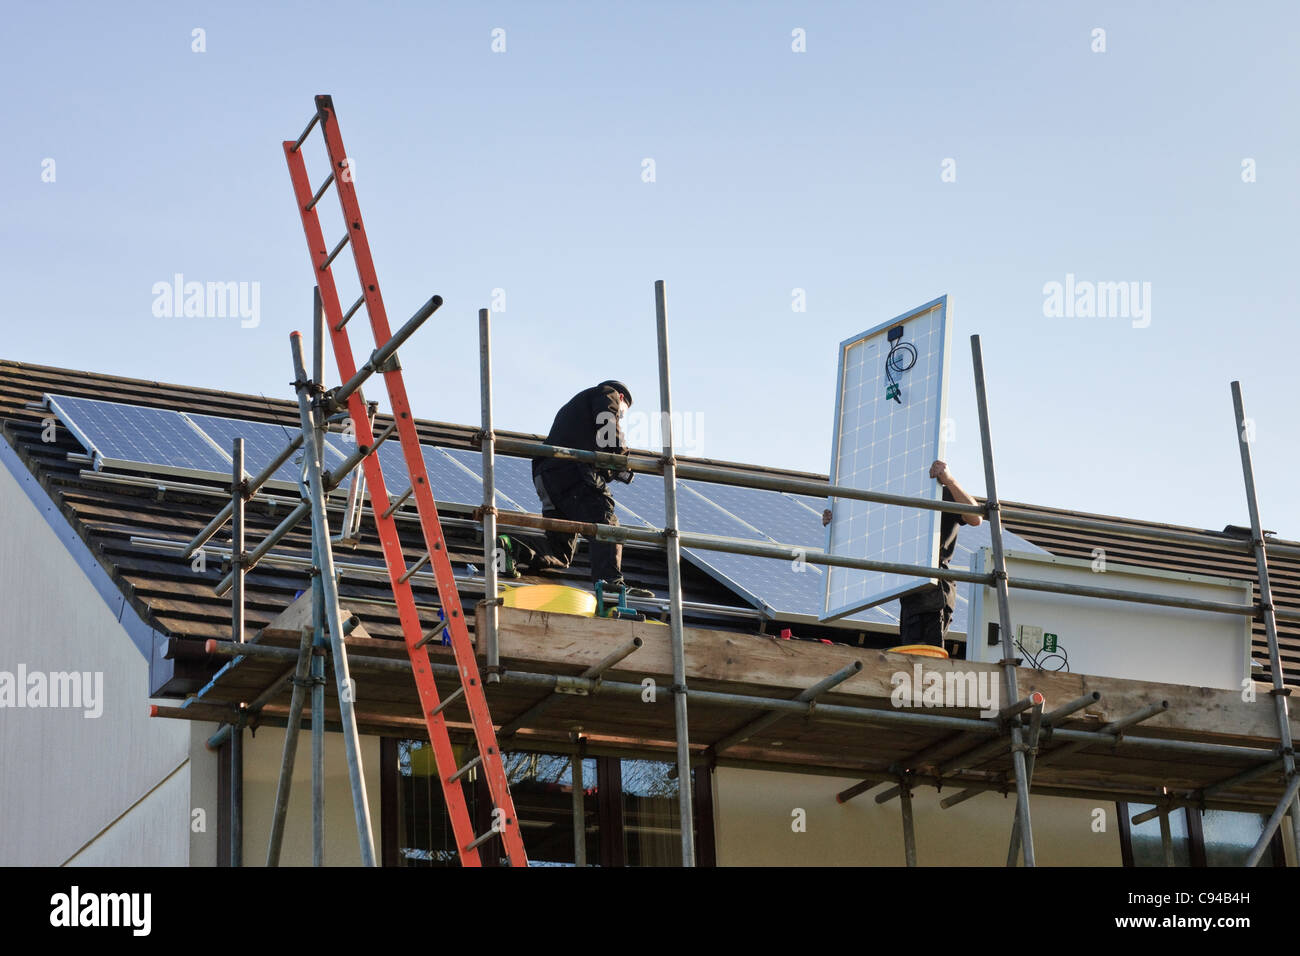 UK, Britain. Workmen fitting new solar panels to a house roof for the Feed-in Tariff scheme - Stock Image